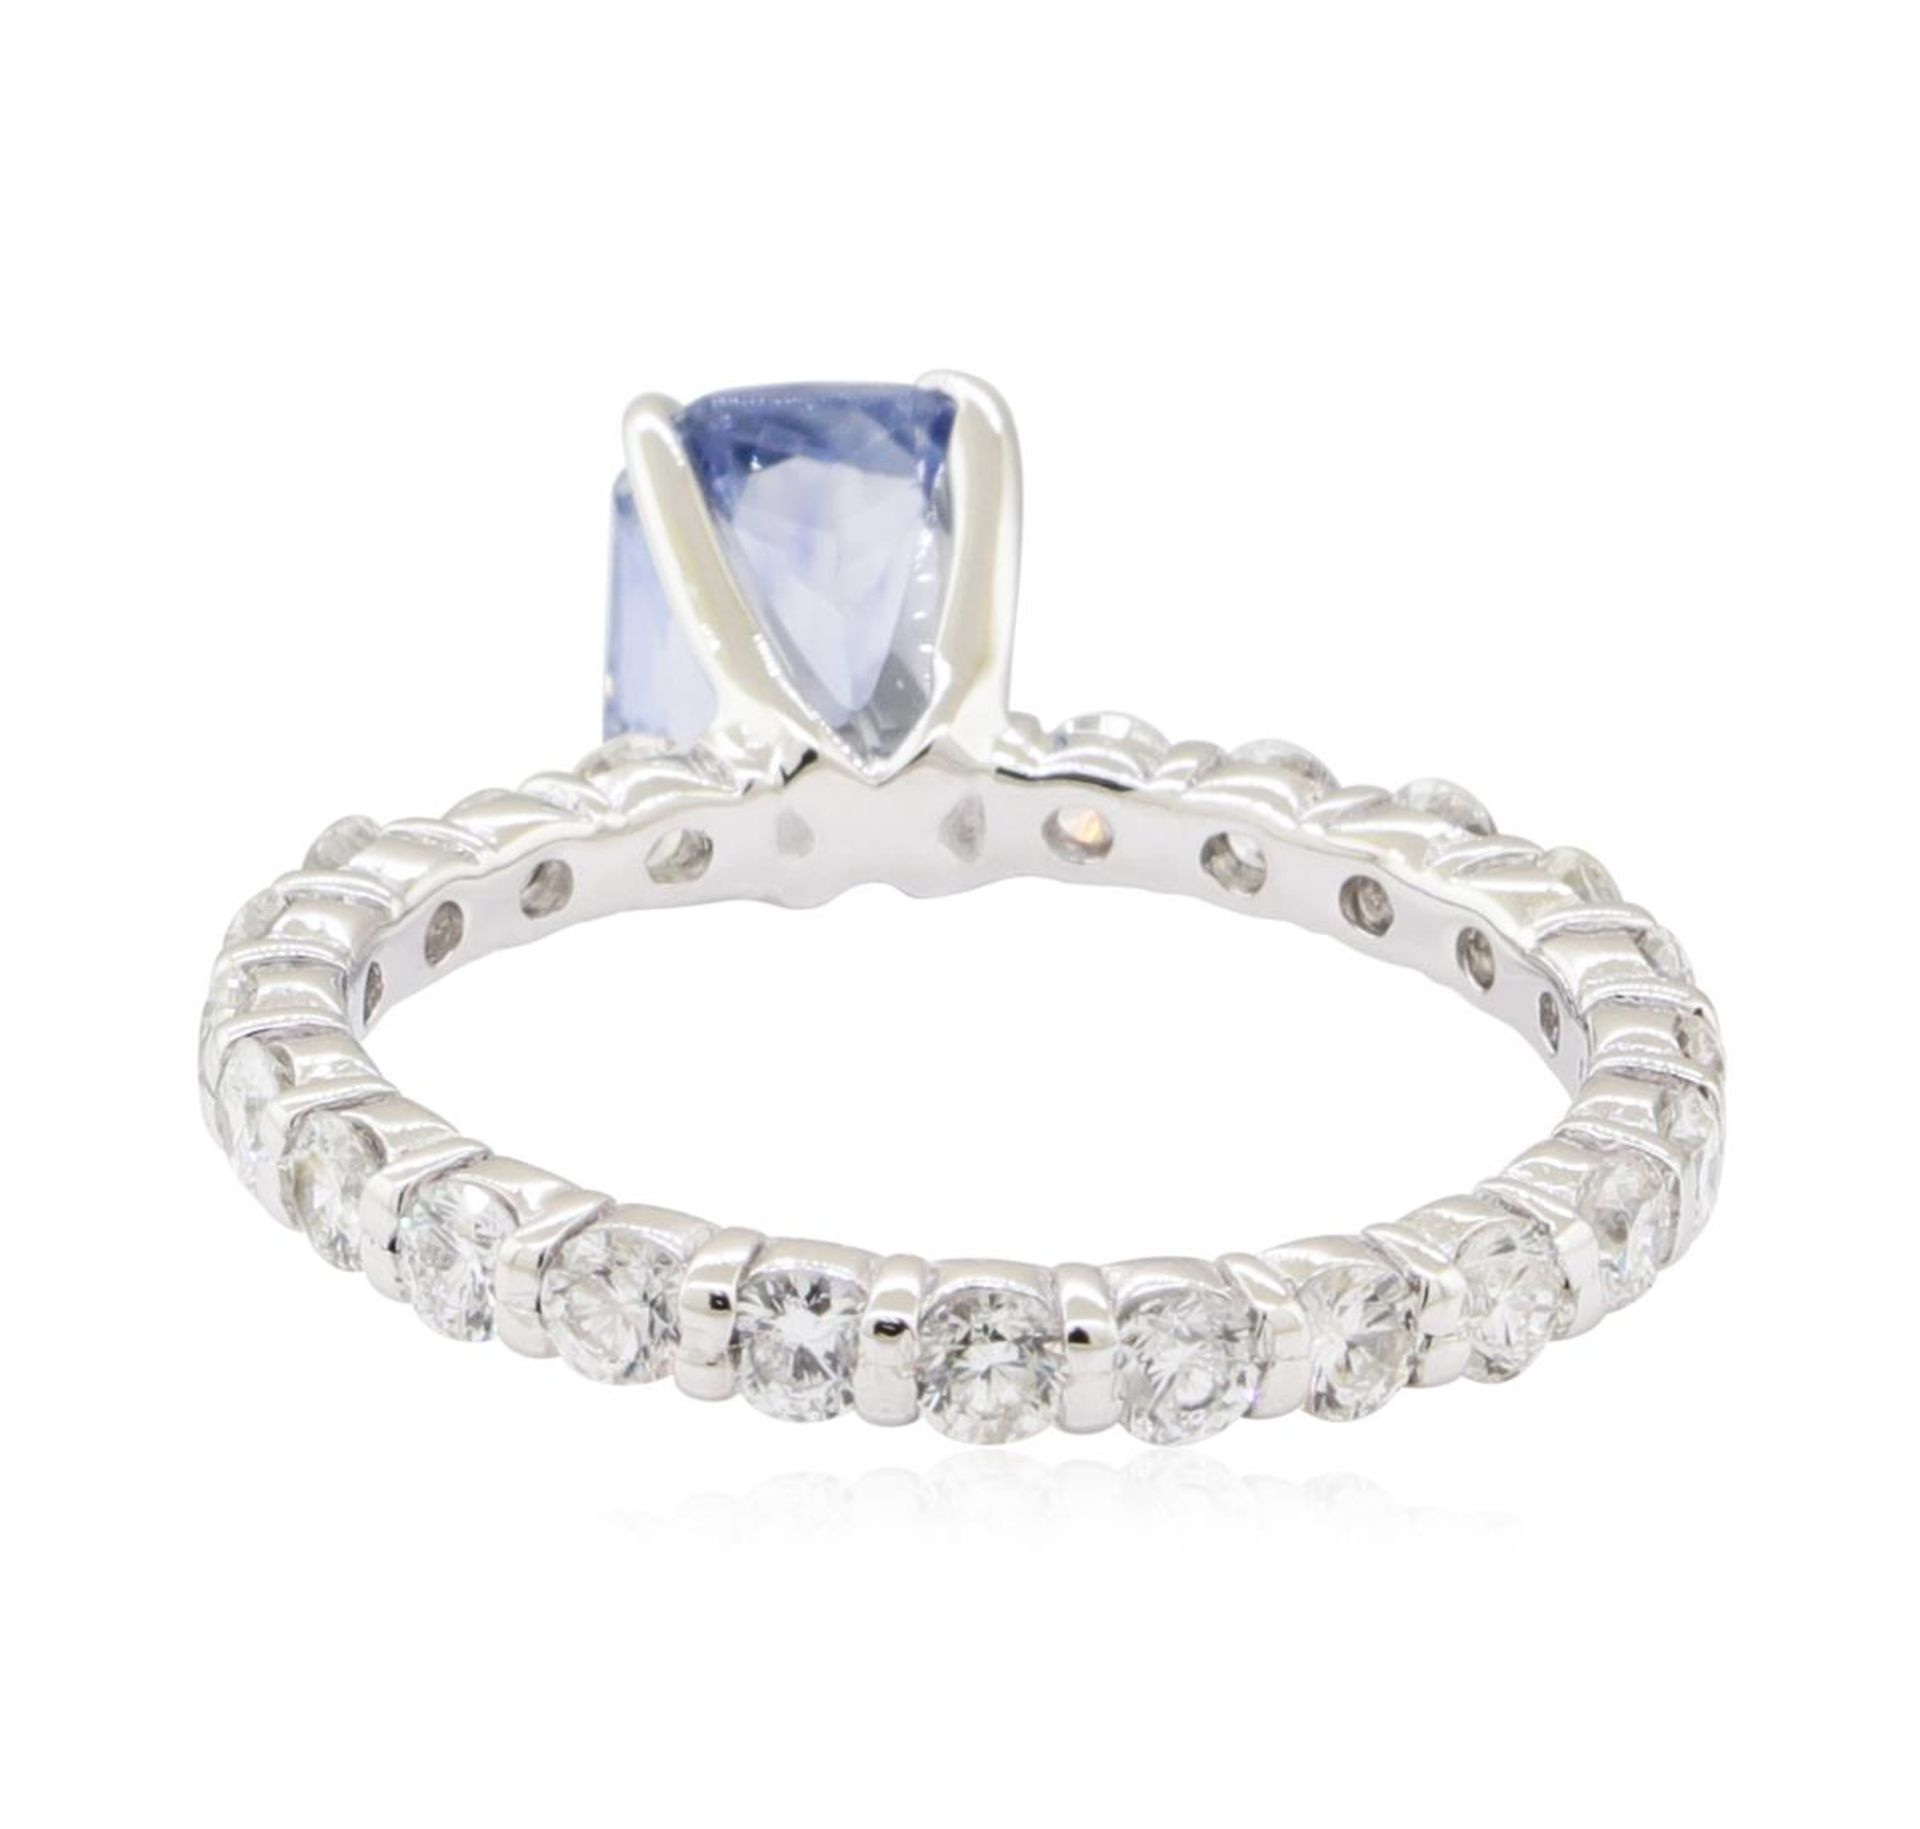 2.84 ctw Sapphire and Diamond Ring - 14KT White Gold - Image 3 of 5